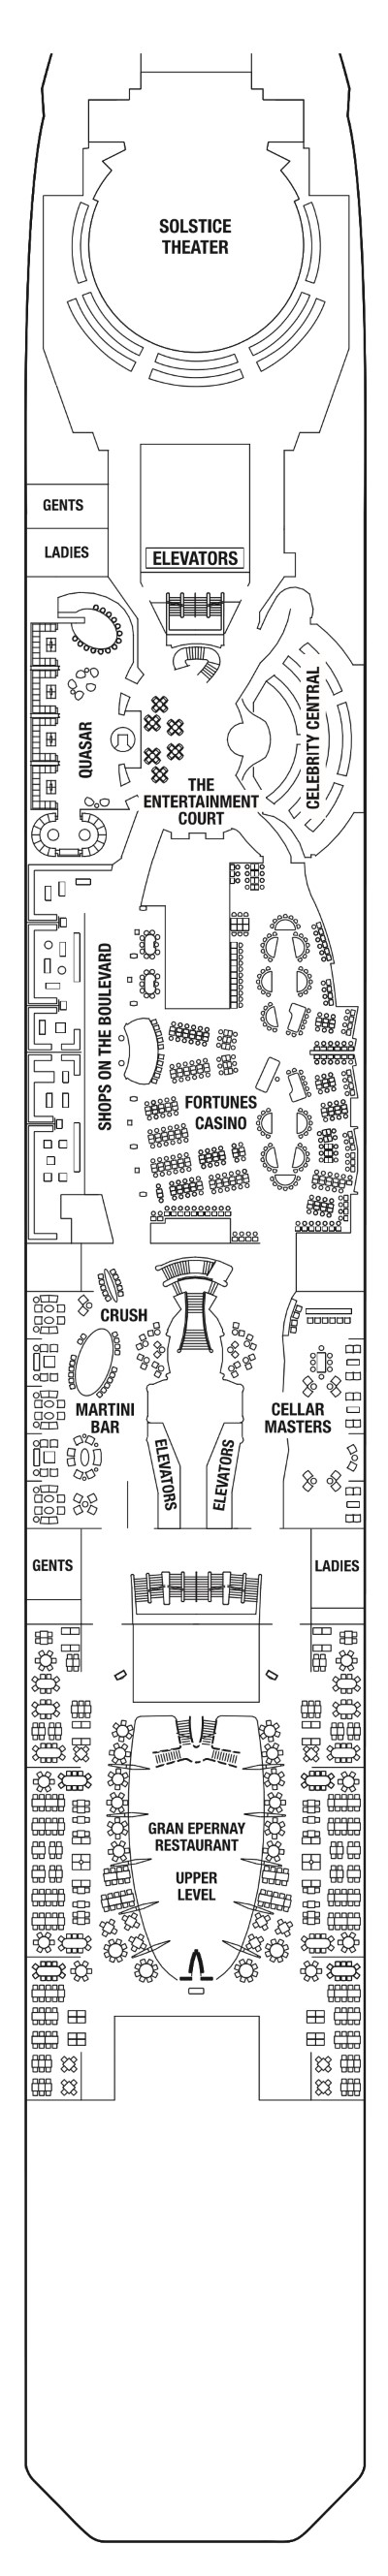 Celebrity Solstice Deck 4 layout